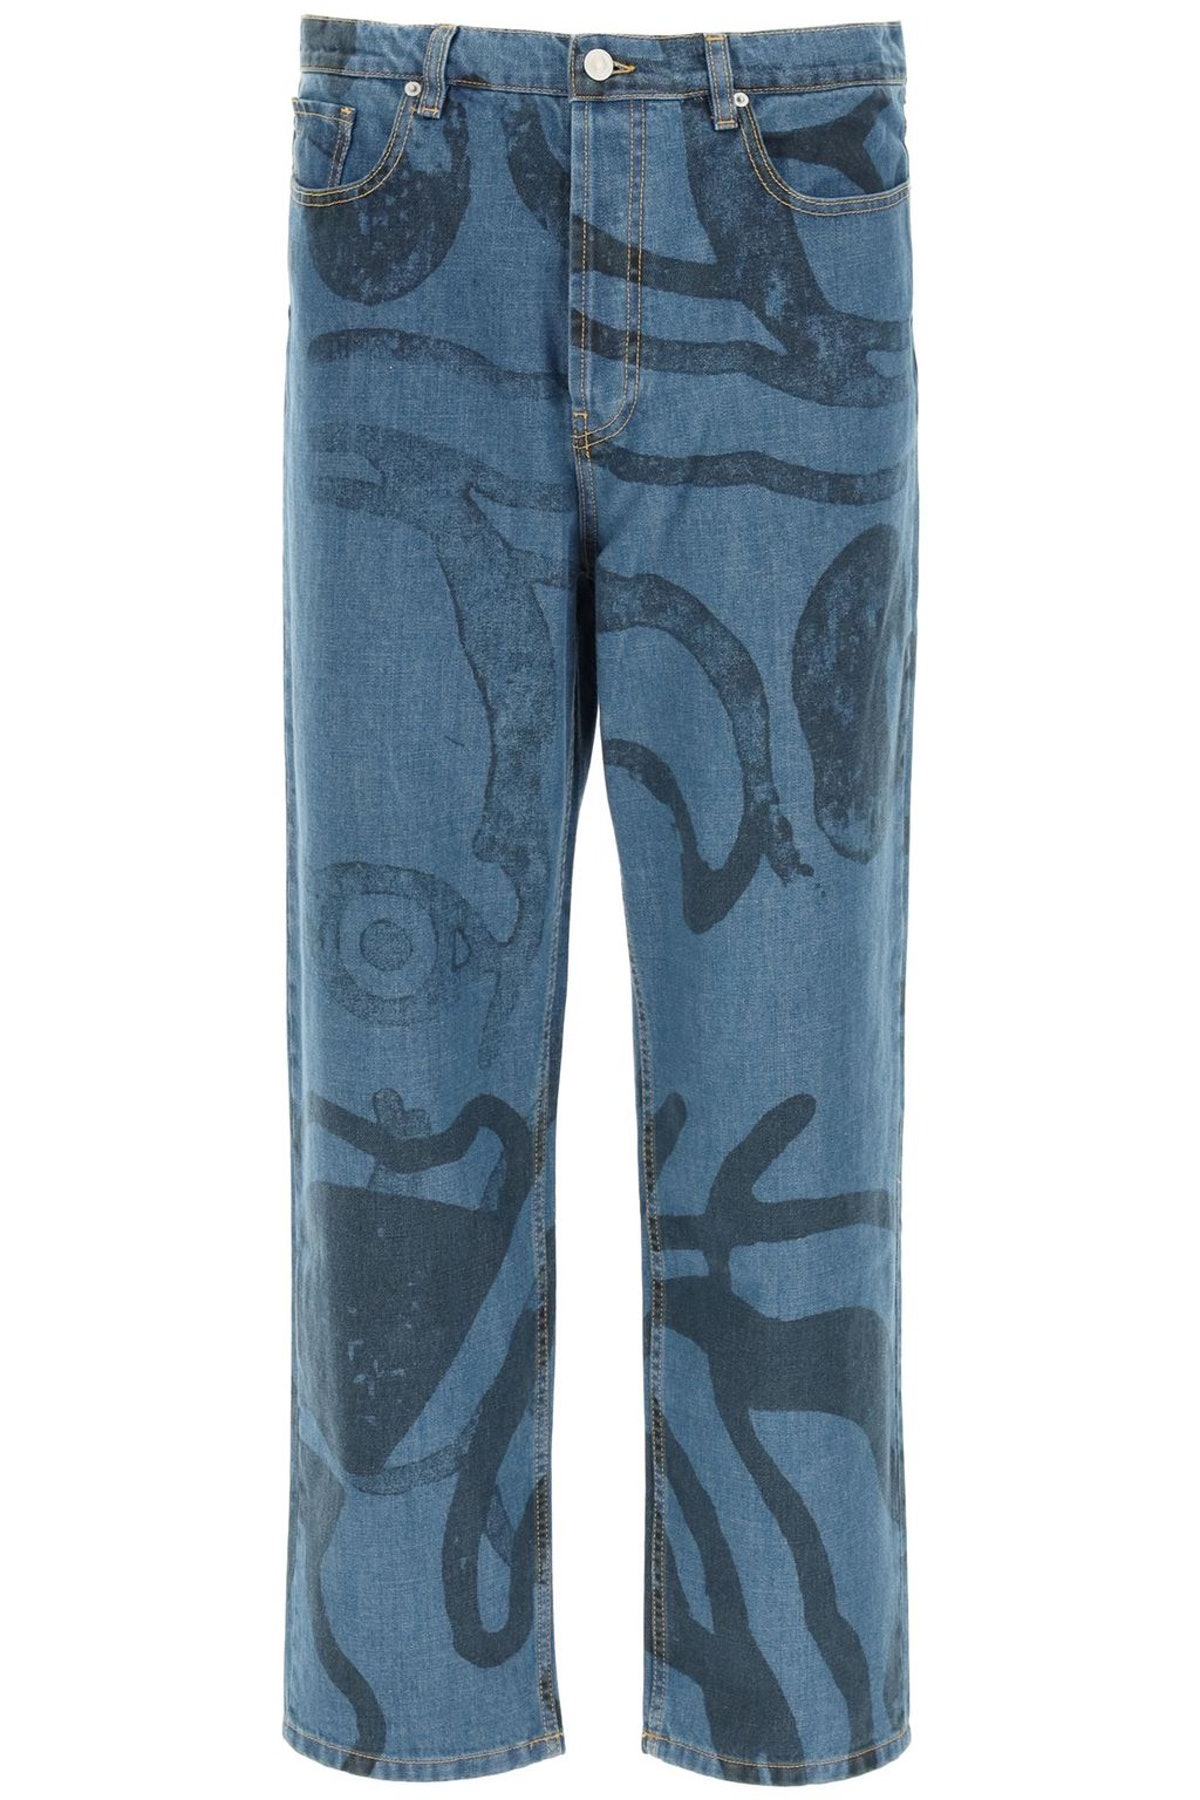 Kenzo Large Jeans With K-tiger Print: image 1